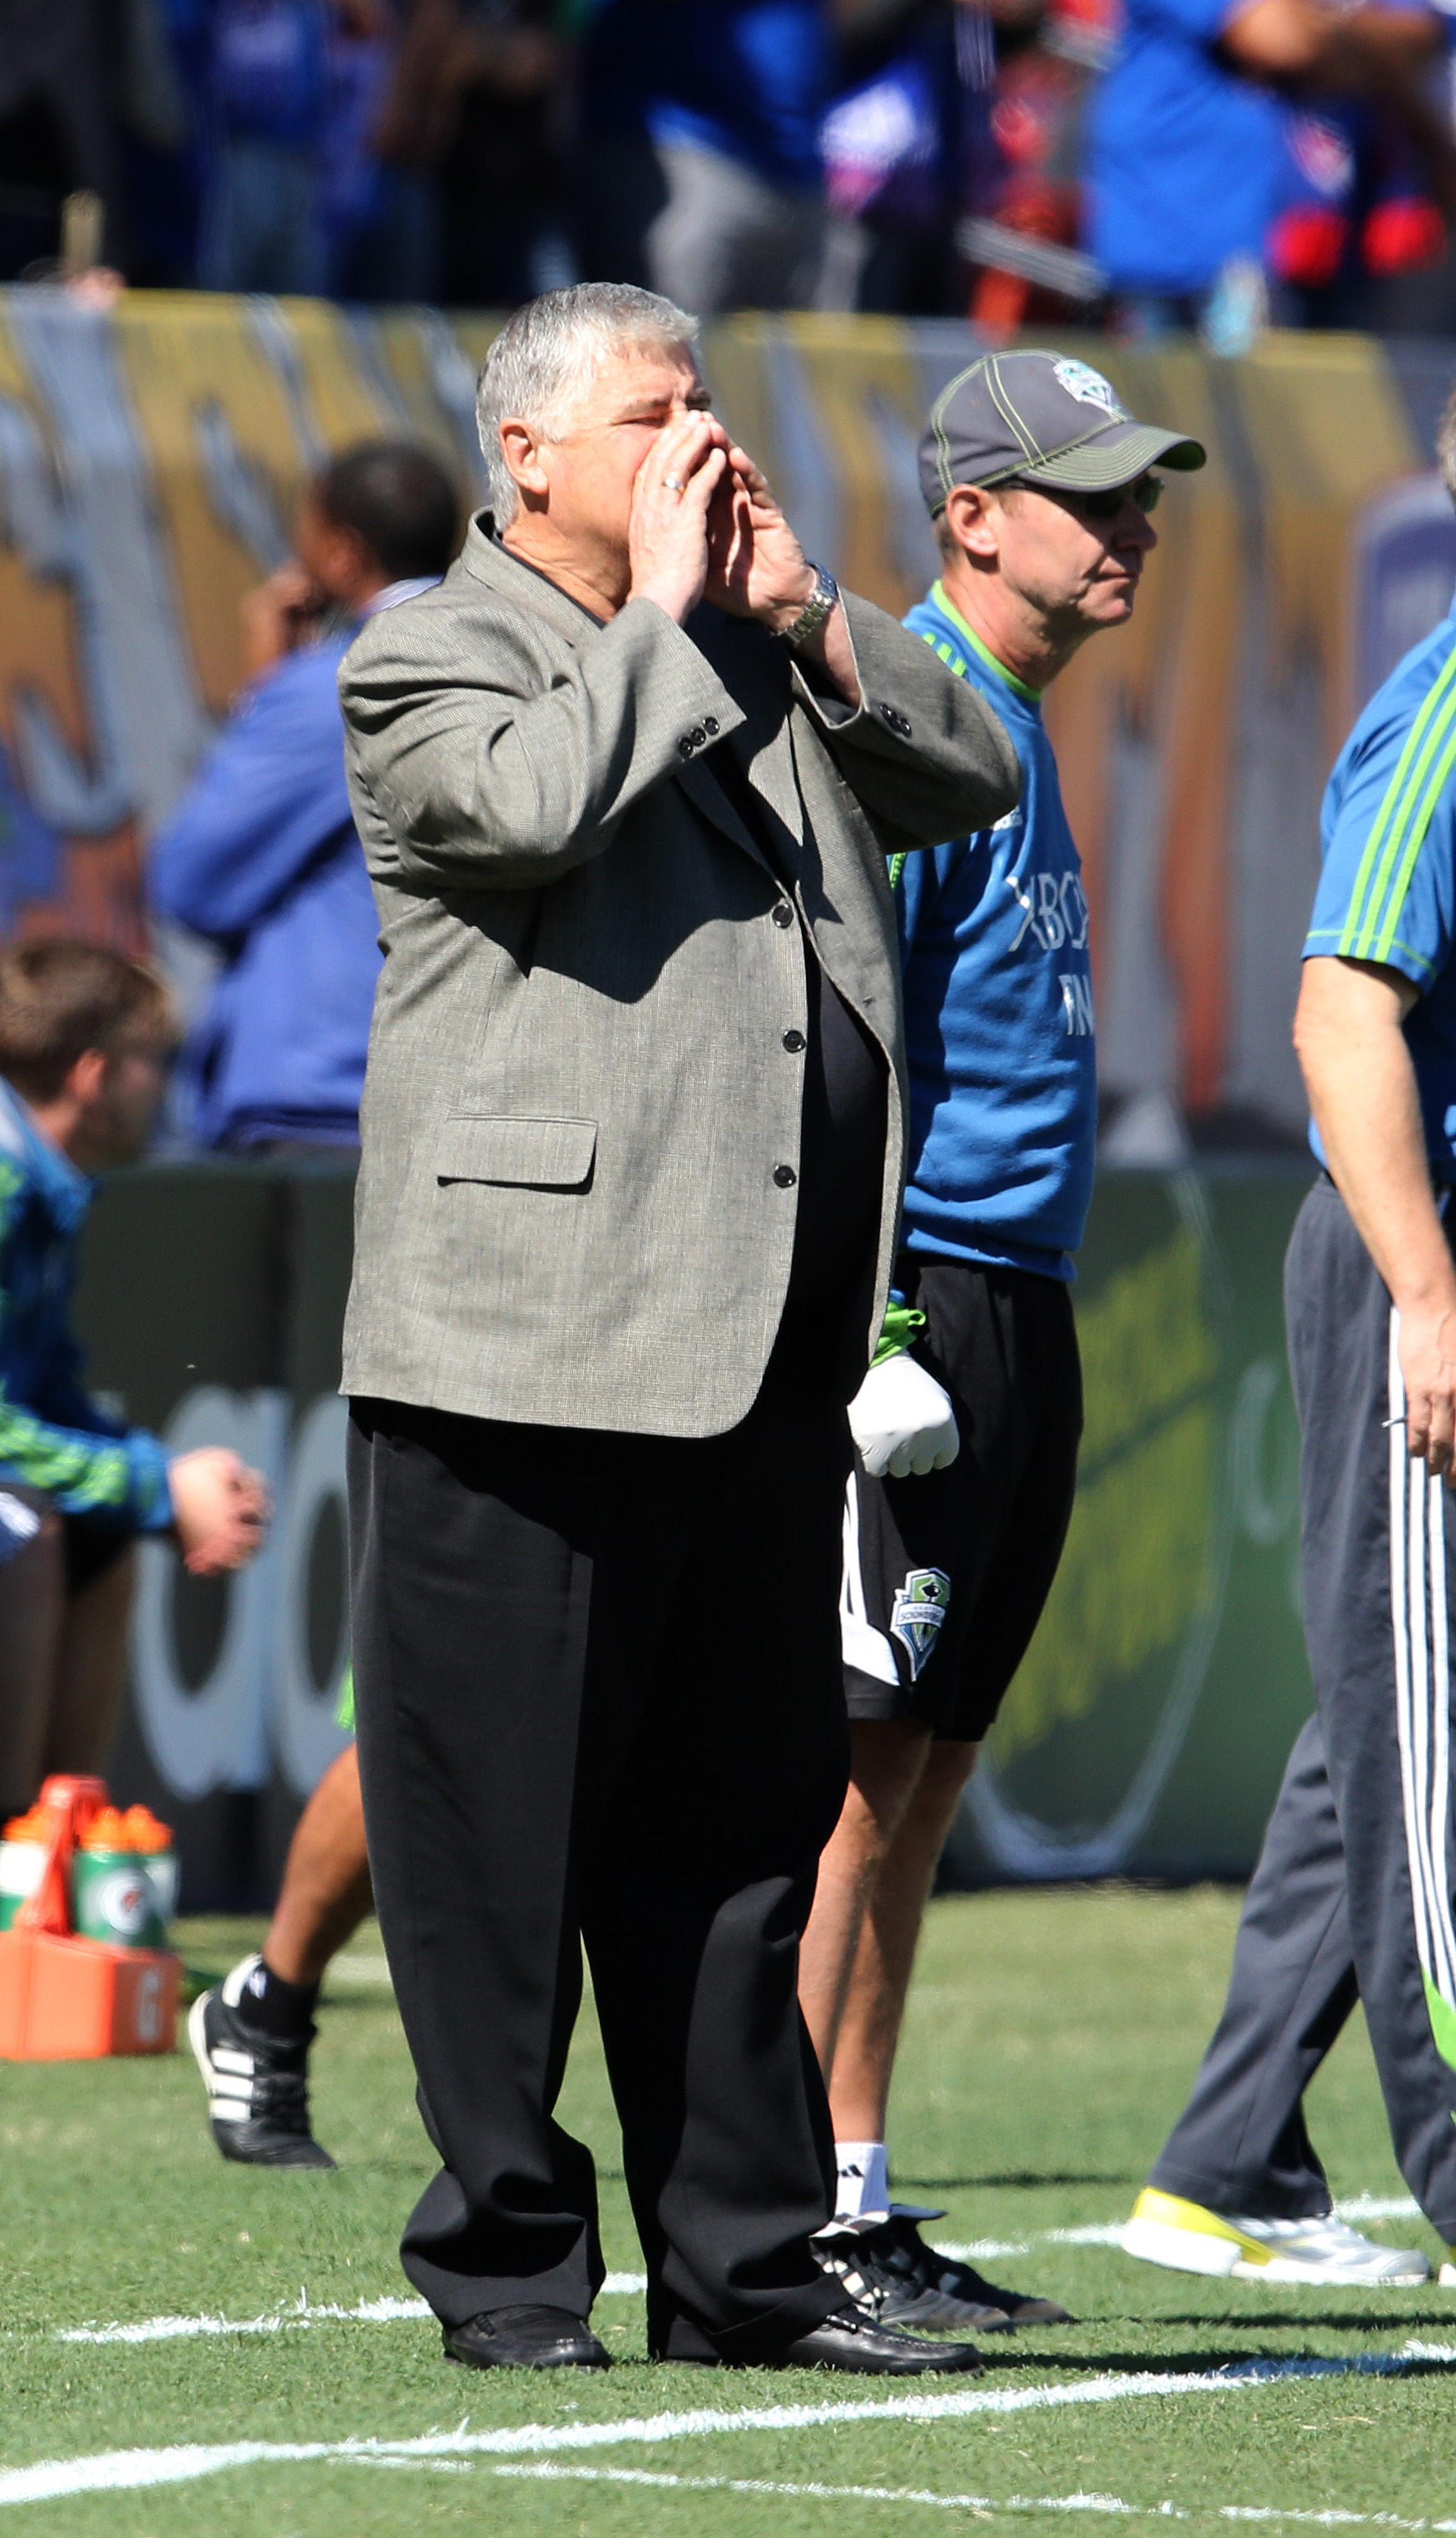 Sigi has some choice words for his doubters